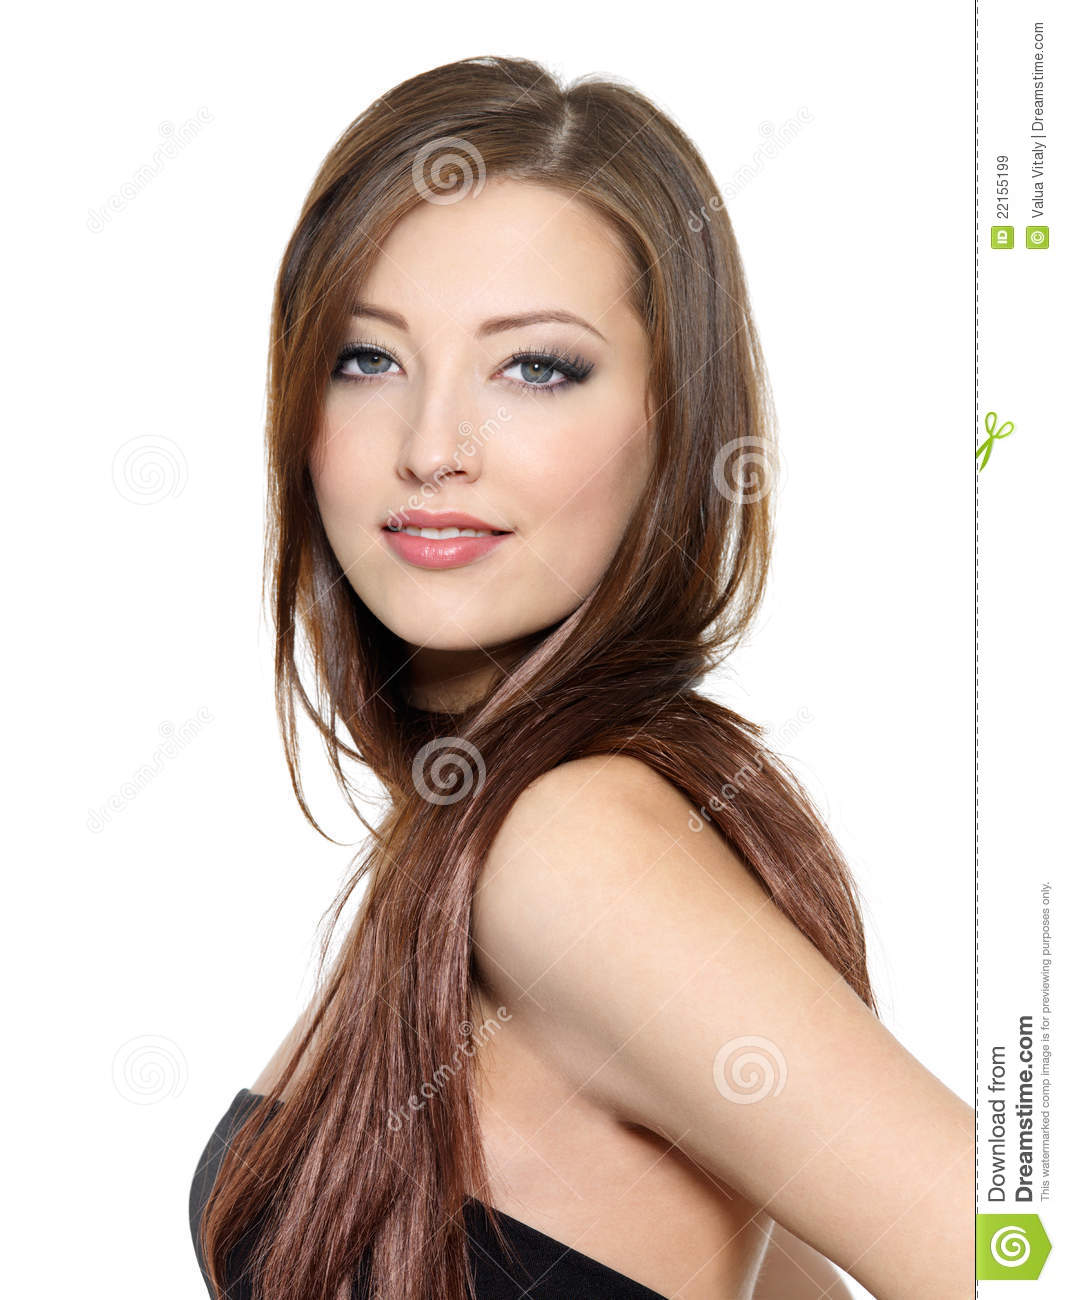 portrait-beautiful-woman-long-hair-22155